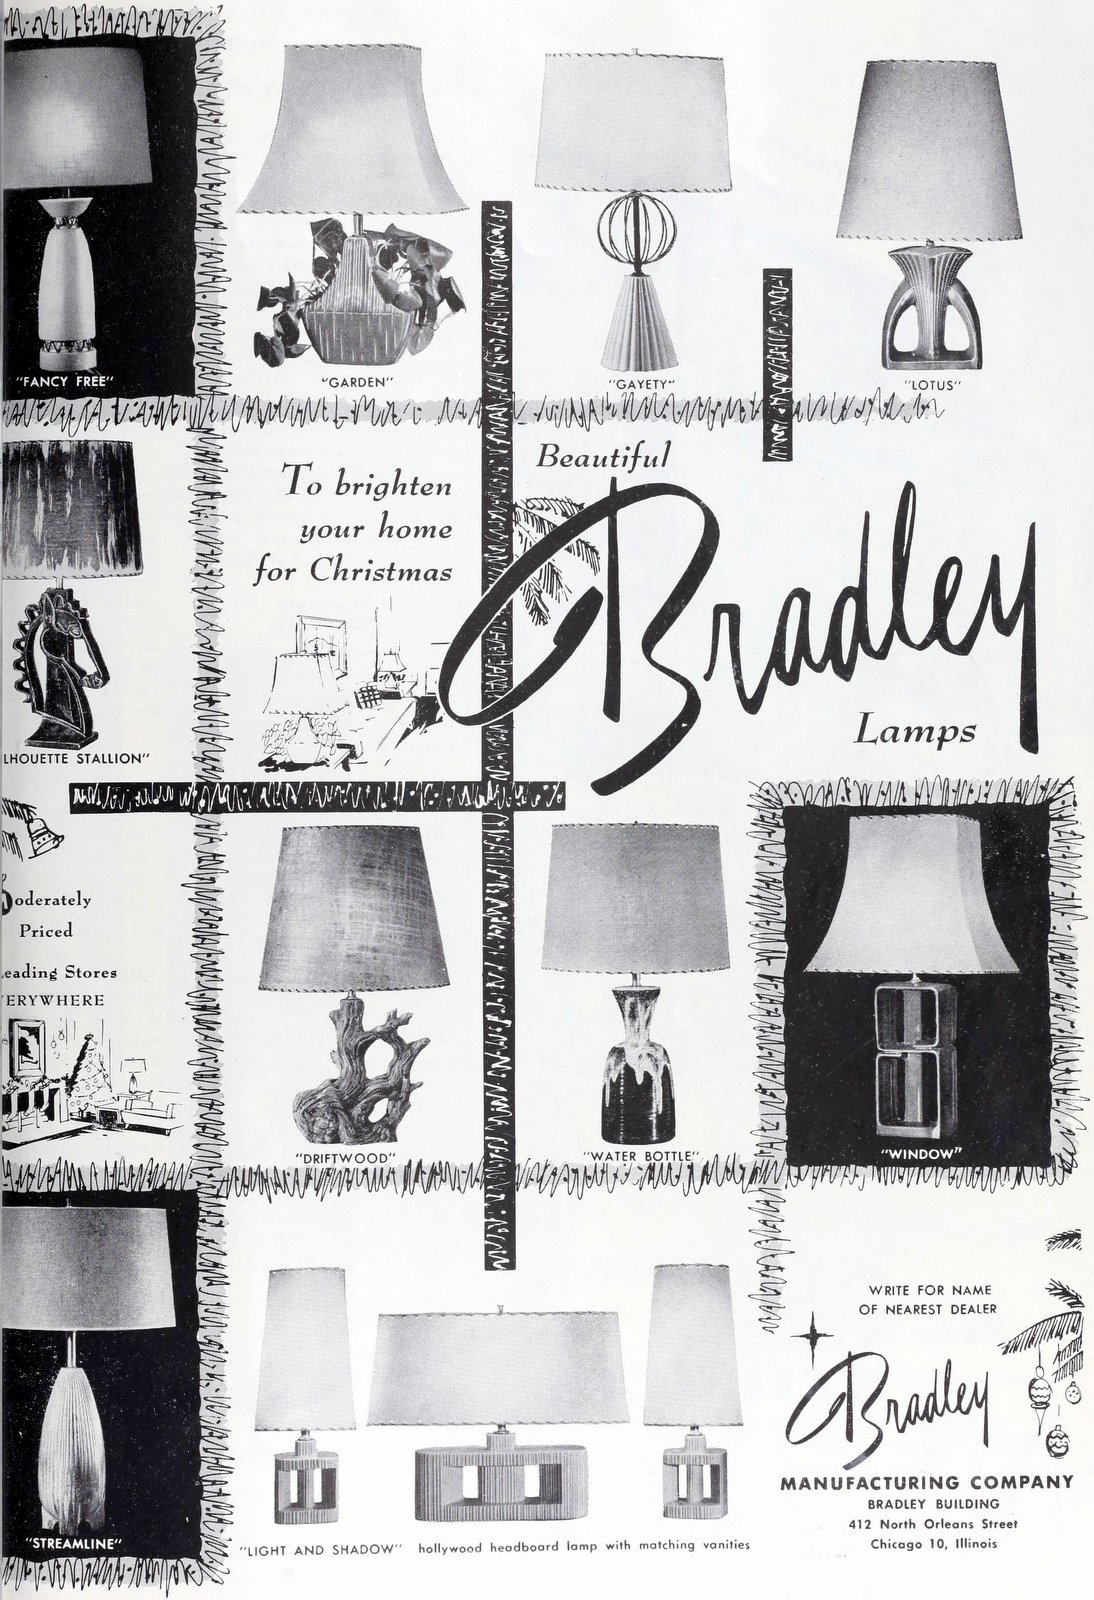 Vintage Bradley lamps and lampshades (1953)